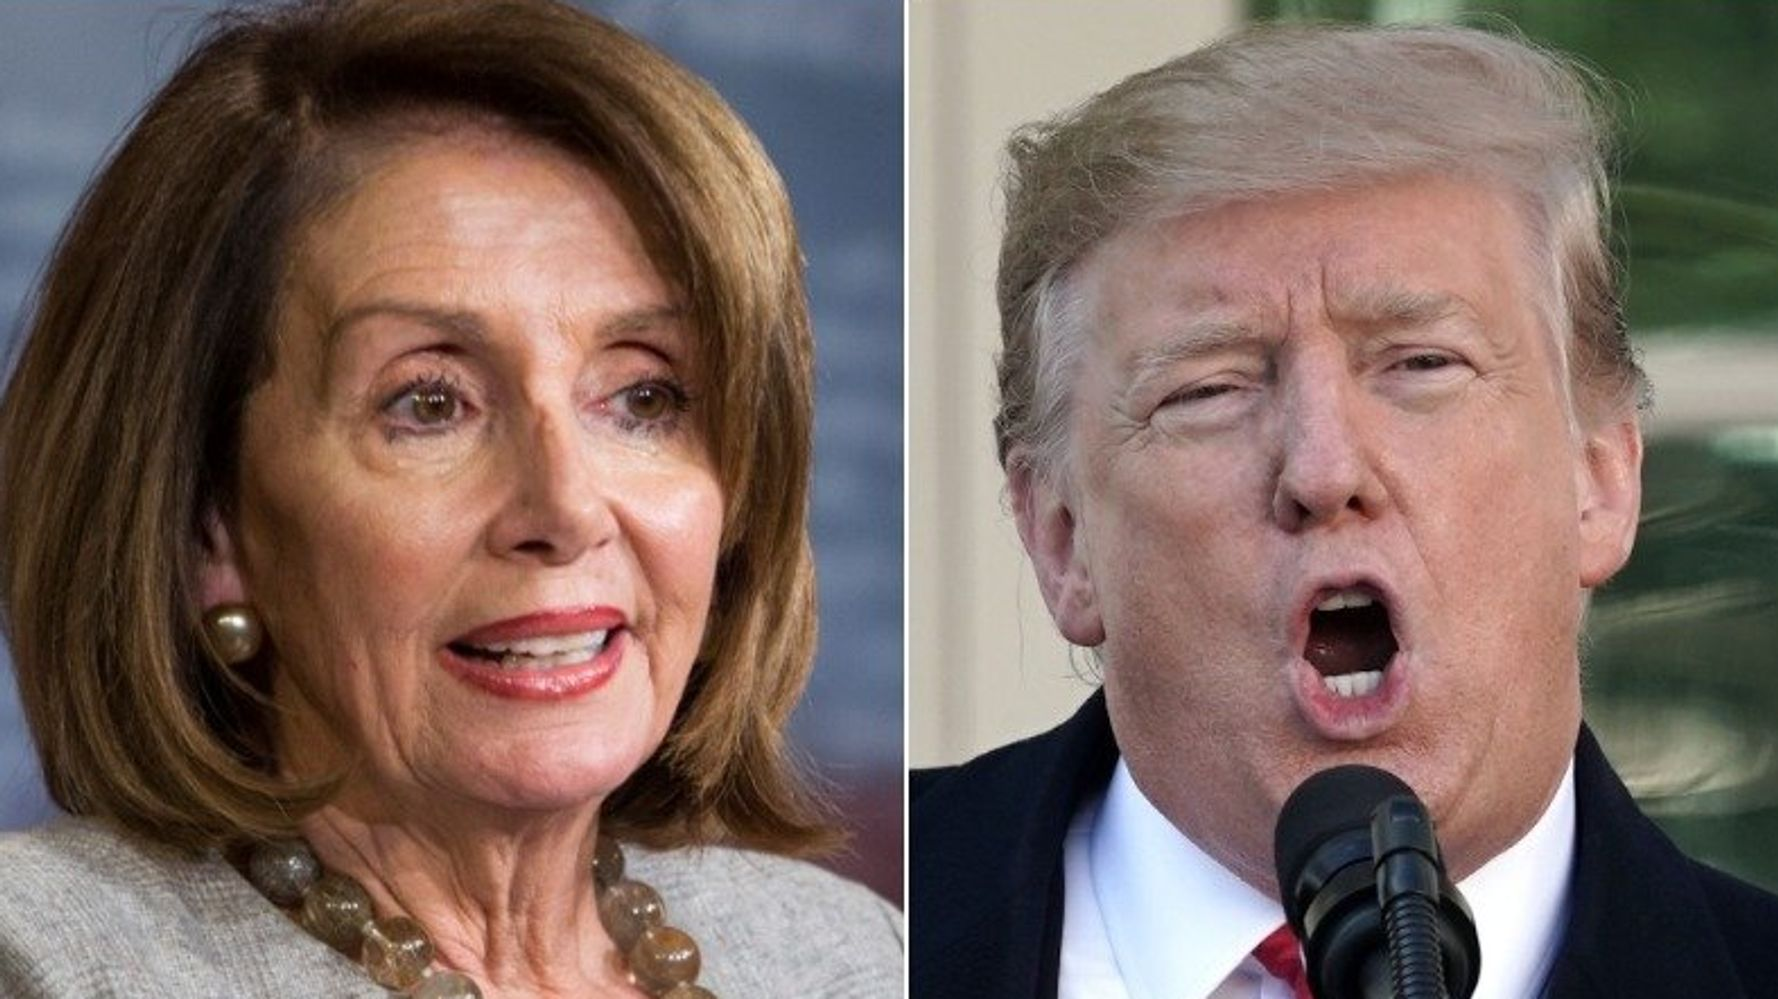 Westlake Legal Group 5c518c67260000d001faeffc Twitter Users Turn Trump's New Nickname For Nancy Pelosi Right Back At Him